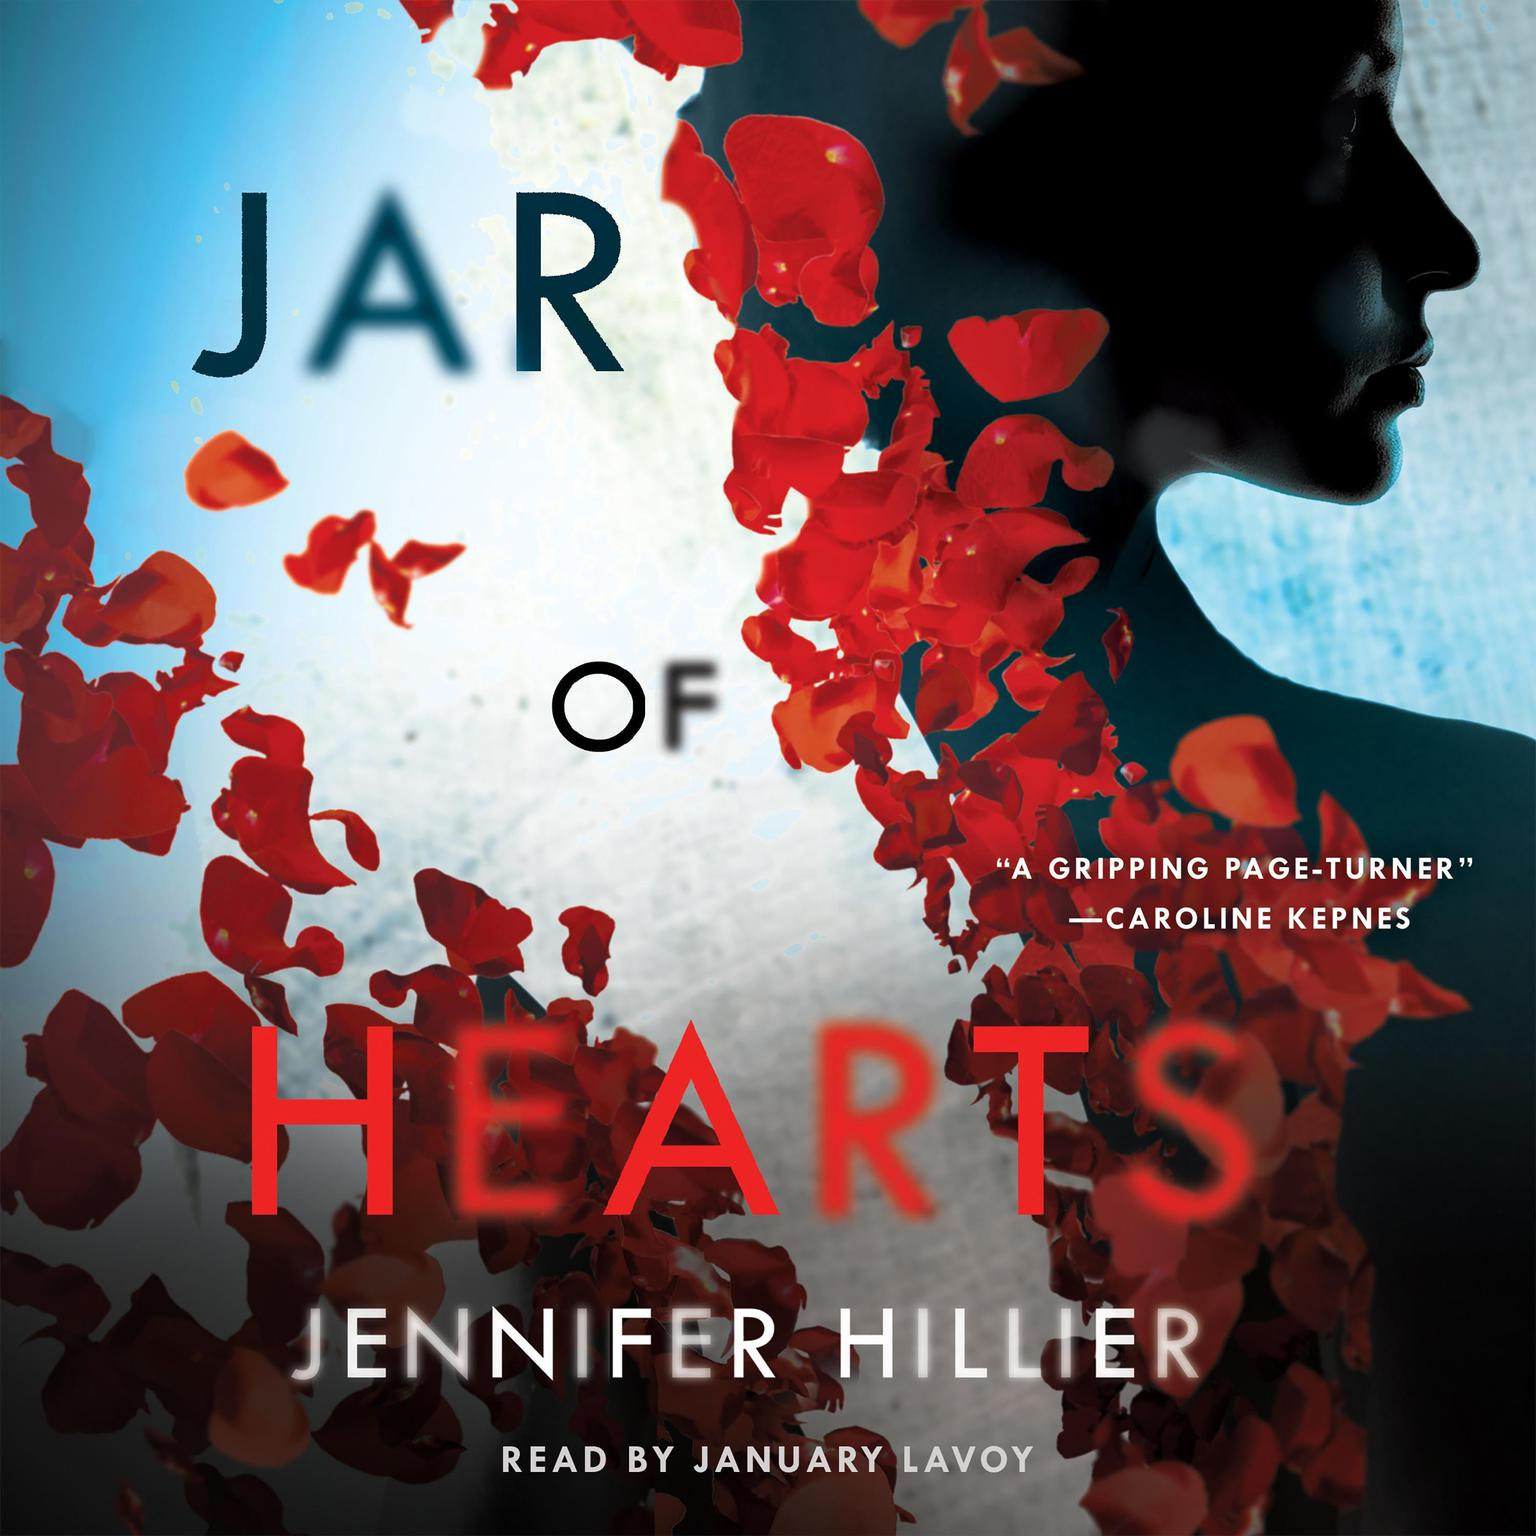 Printable Jar of Hearts Audiobook Cover Art